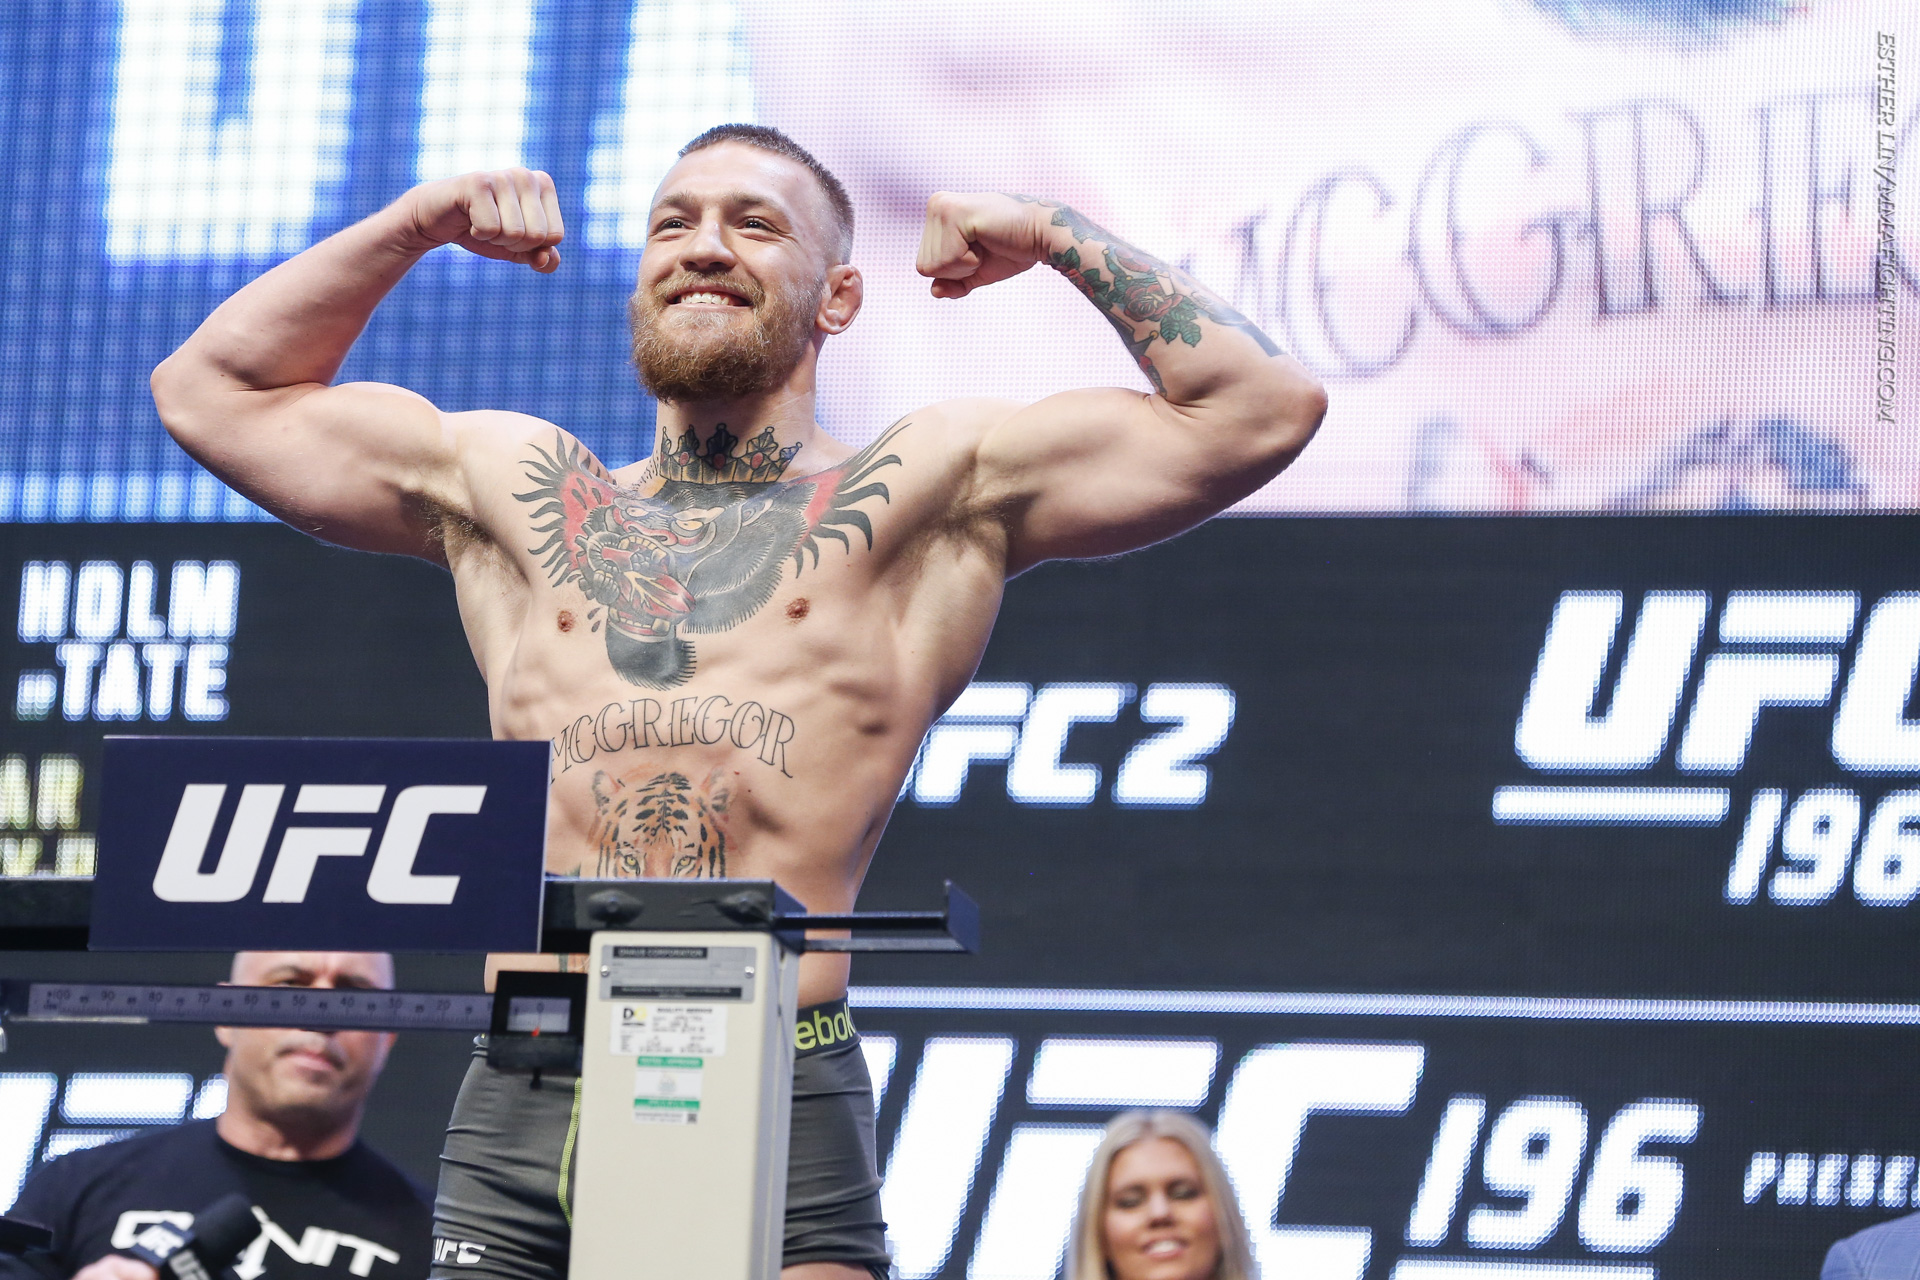 UFC 196 weigh-in photos Conor McGregor flexes during the UFC 196 weigh-ins  at MGM Grand Garden Arena in Las Vegas, Nev., on Fri., Mar. 4, 2016.